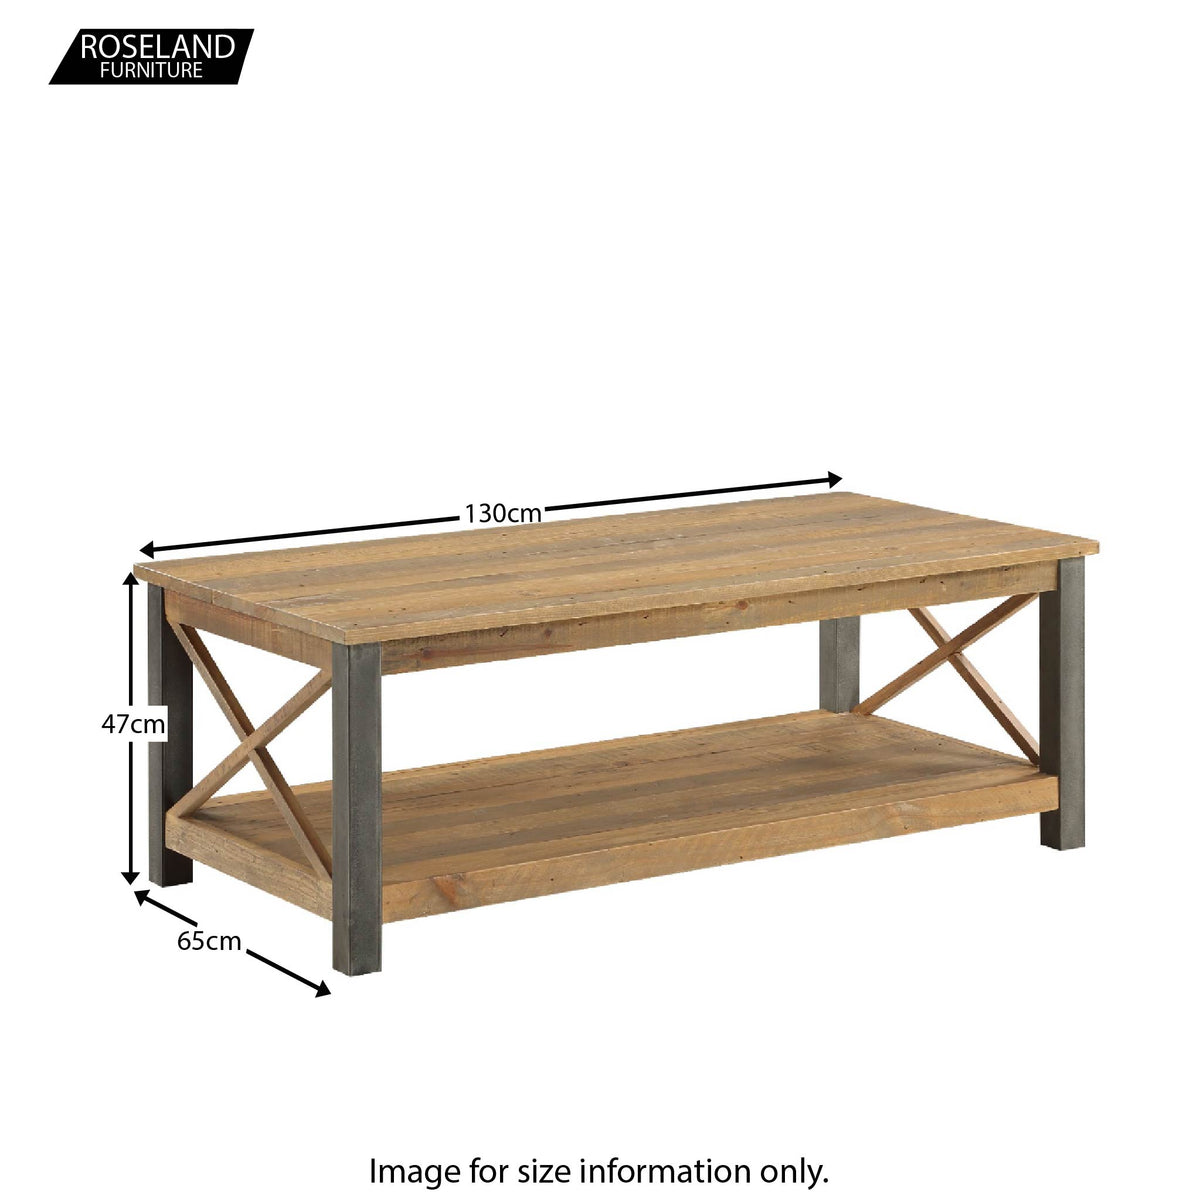 Dimensions for Urban Elegance Reclaimed Wood Extra Large Coffee Table  47 x 130 x 65 cm